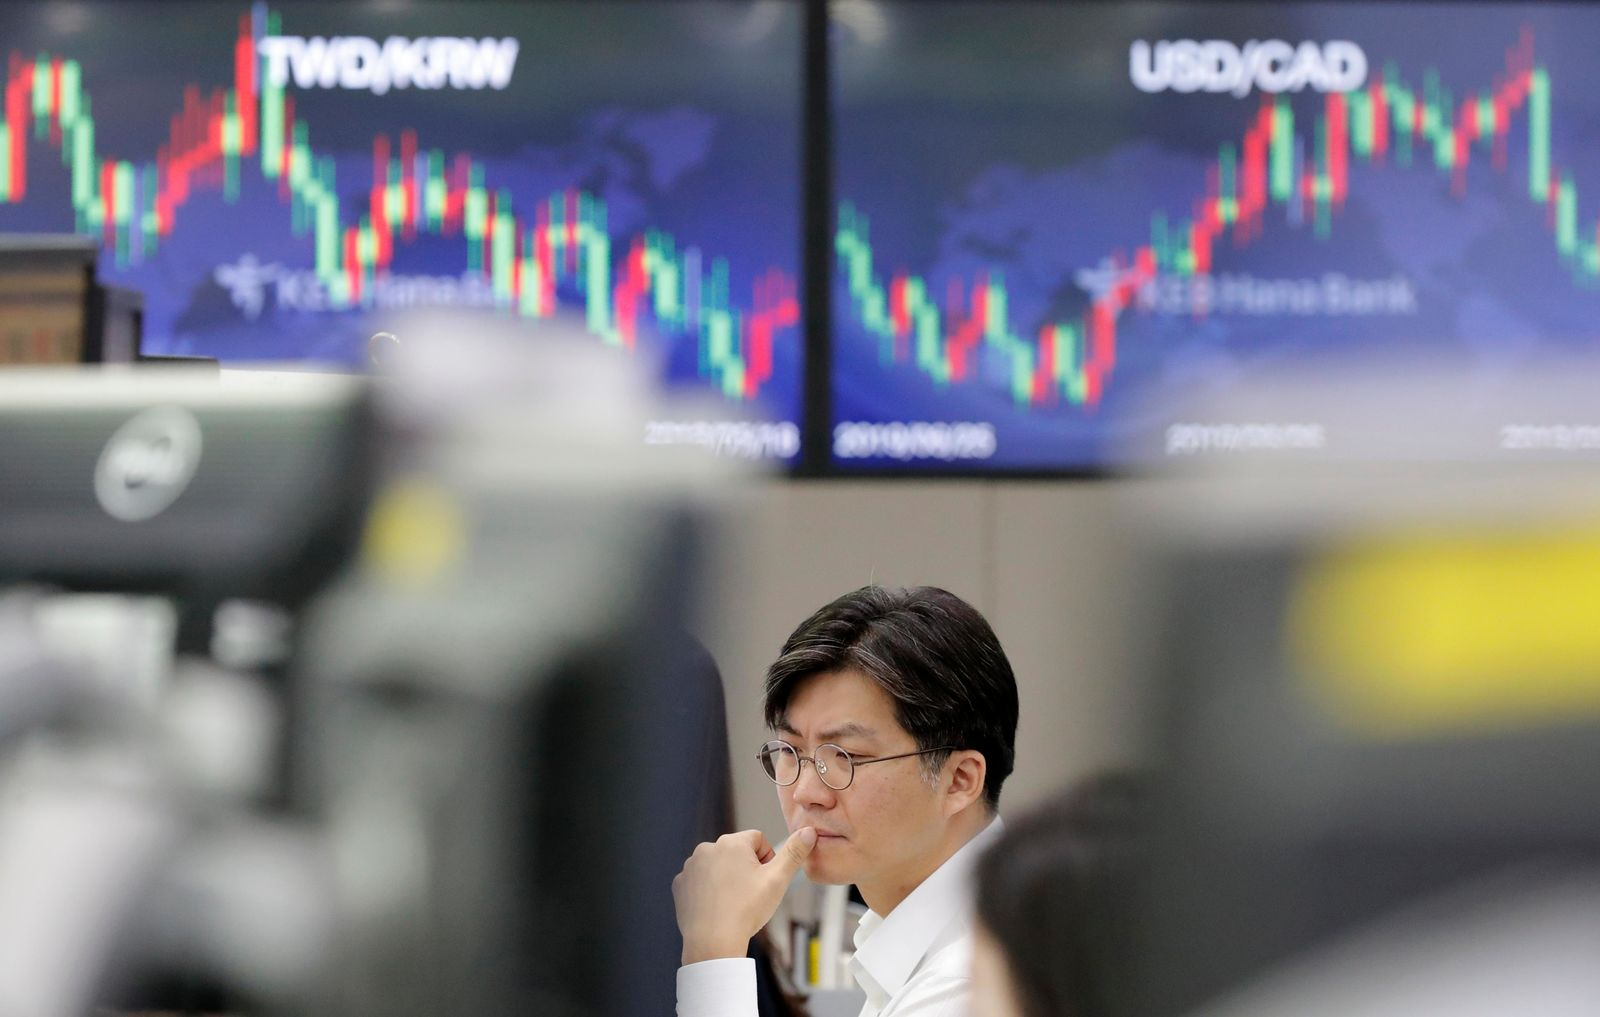 A currency trader watches the computer monitors near the screens showing the foreign exchange rates at the foreign exchange dealing room in Seoul, South Korea, Monday, Sept. 16, 2019. (AP Photo/Lee Jin-man)